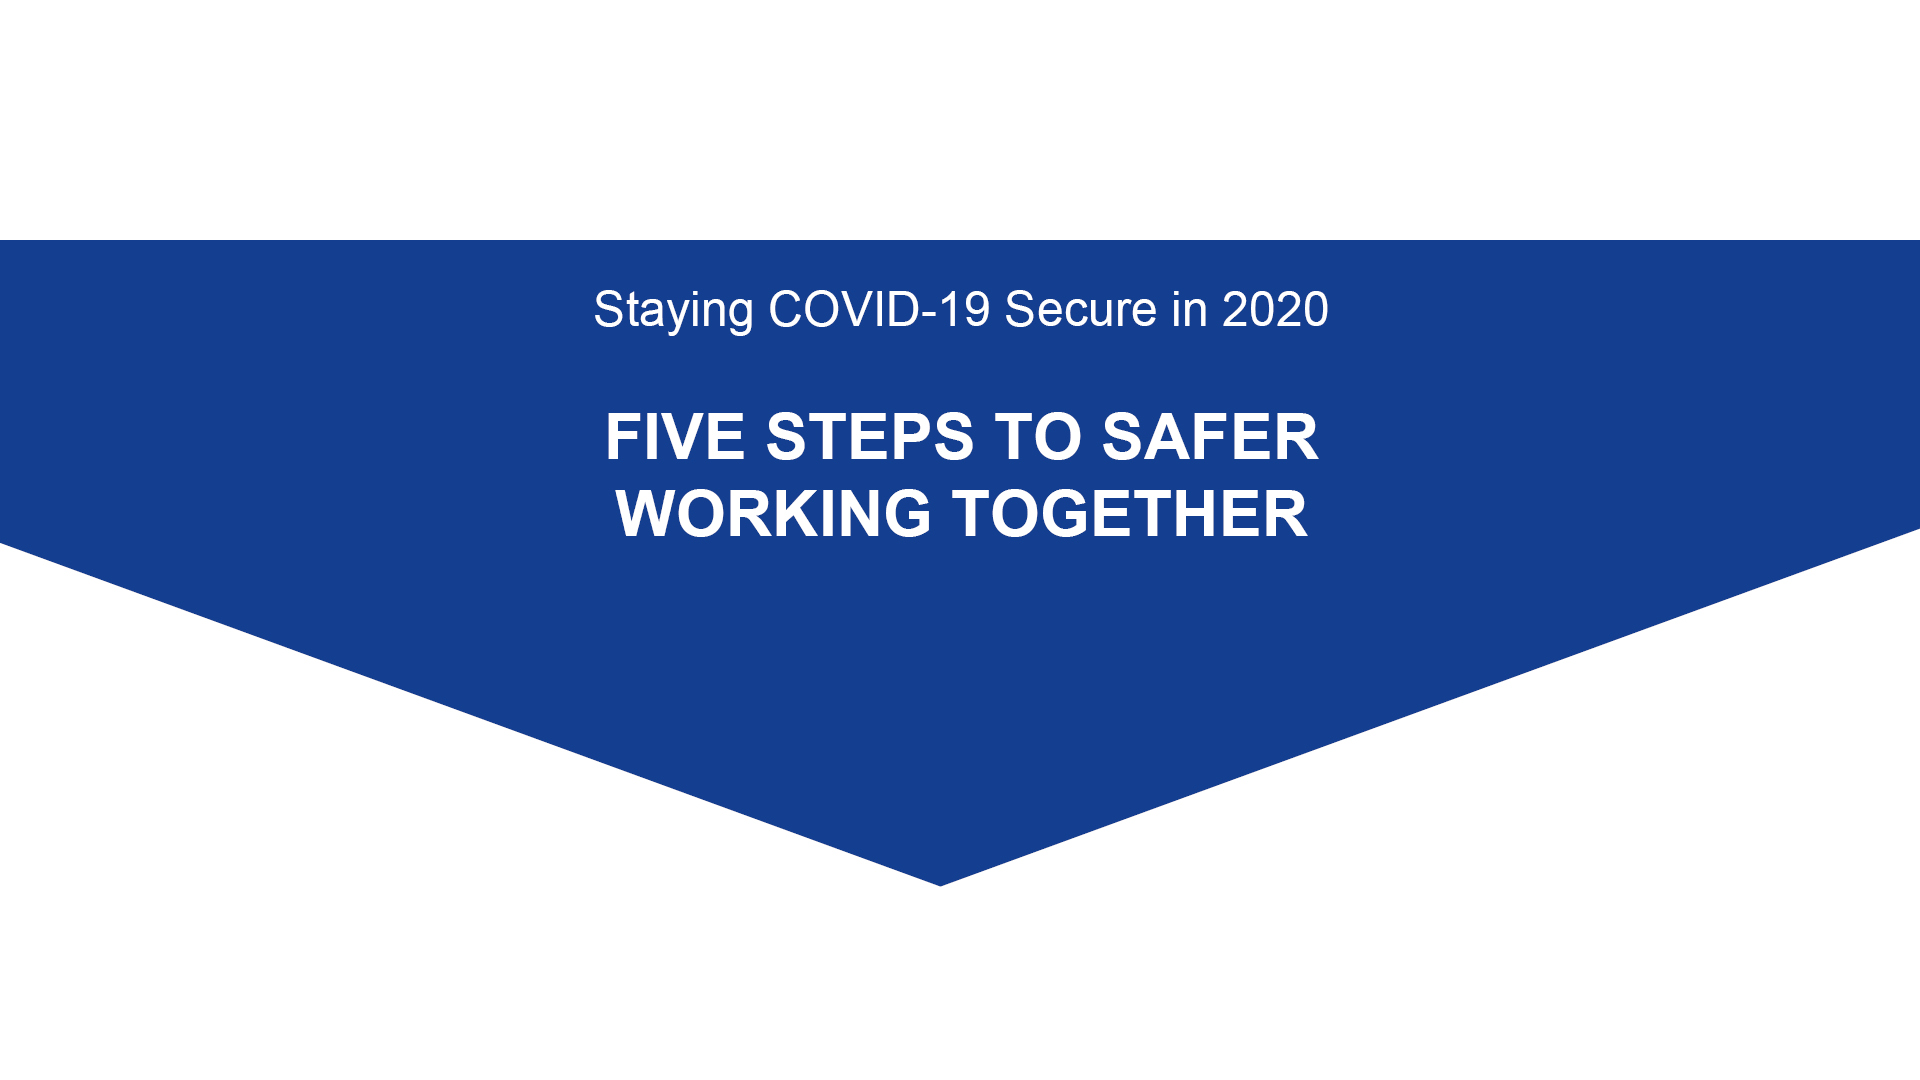 Staying Covid Secure 5 steps to safe working AVK UK